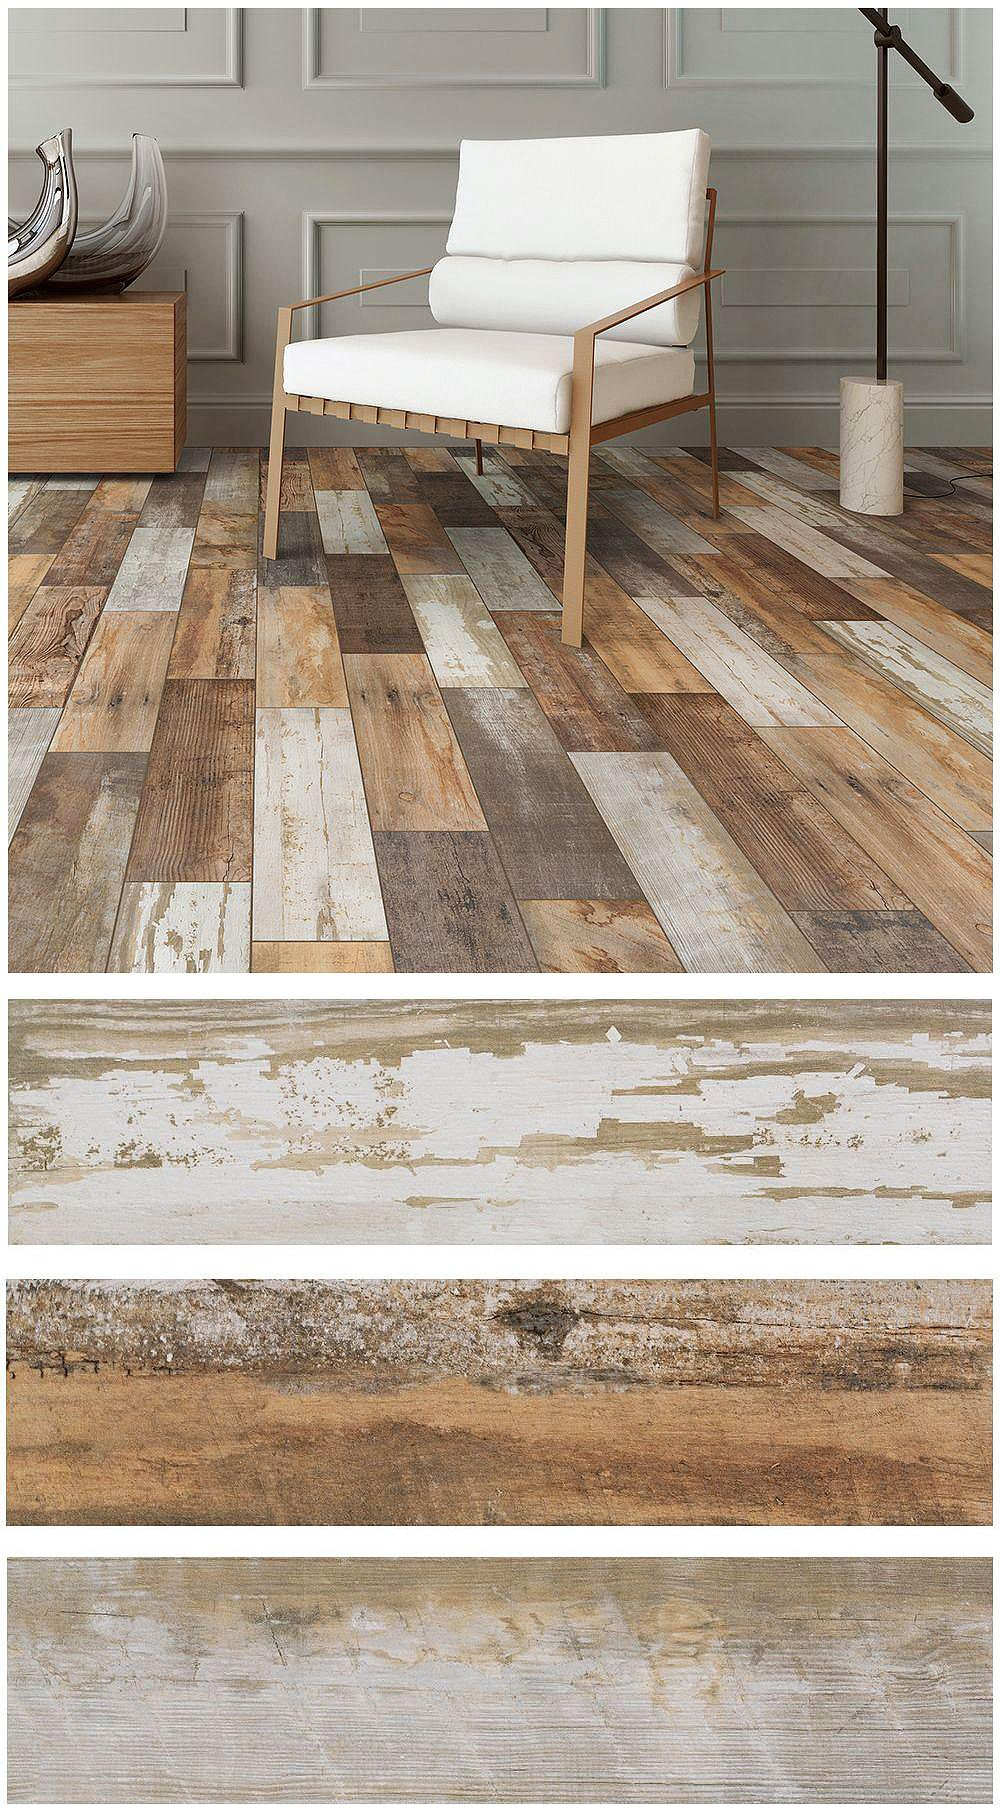 Marazzi montagna wood vintage chic 6 in x 24 in porcelain floor marazzi montagna wood vintage chic 6 in x 24 in porcelain floor and wall tile 1453 sq ft case doublecrazyfo Choice Image